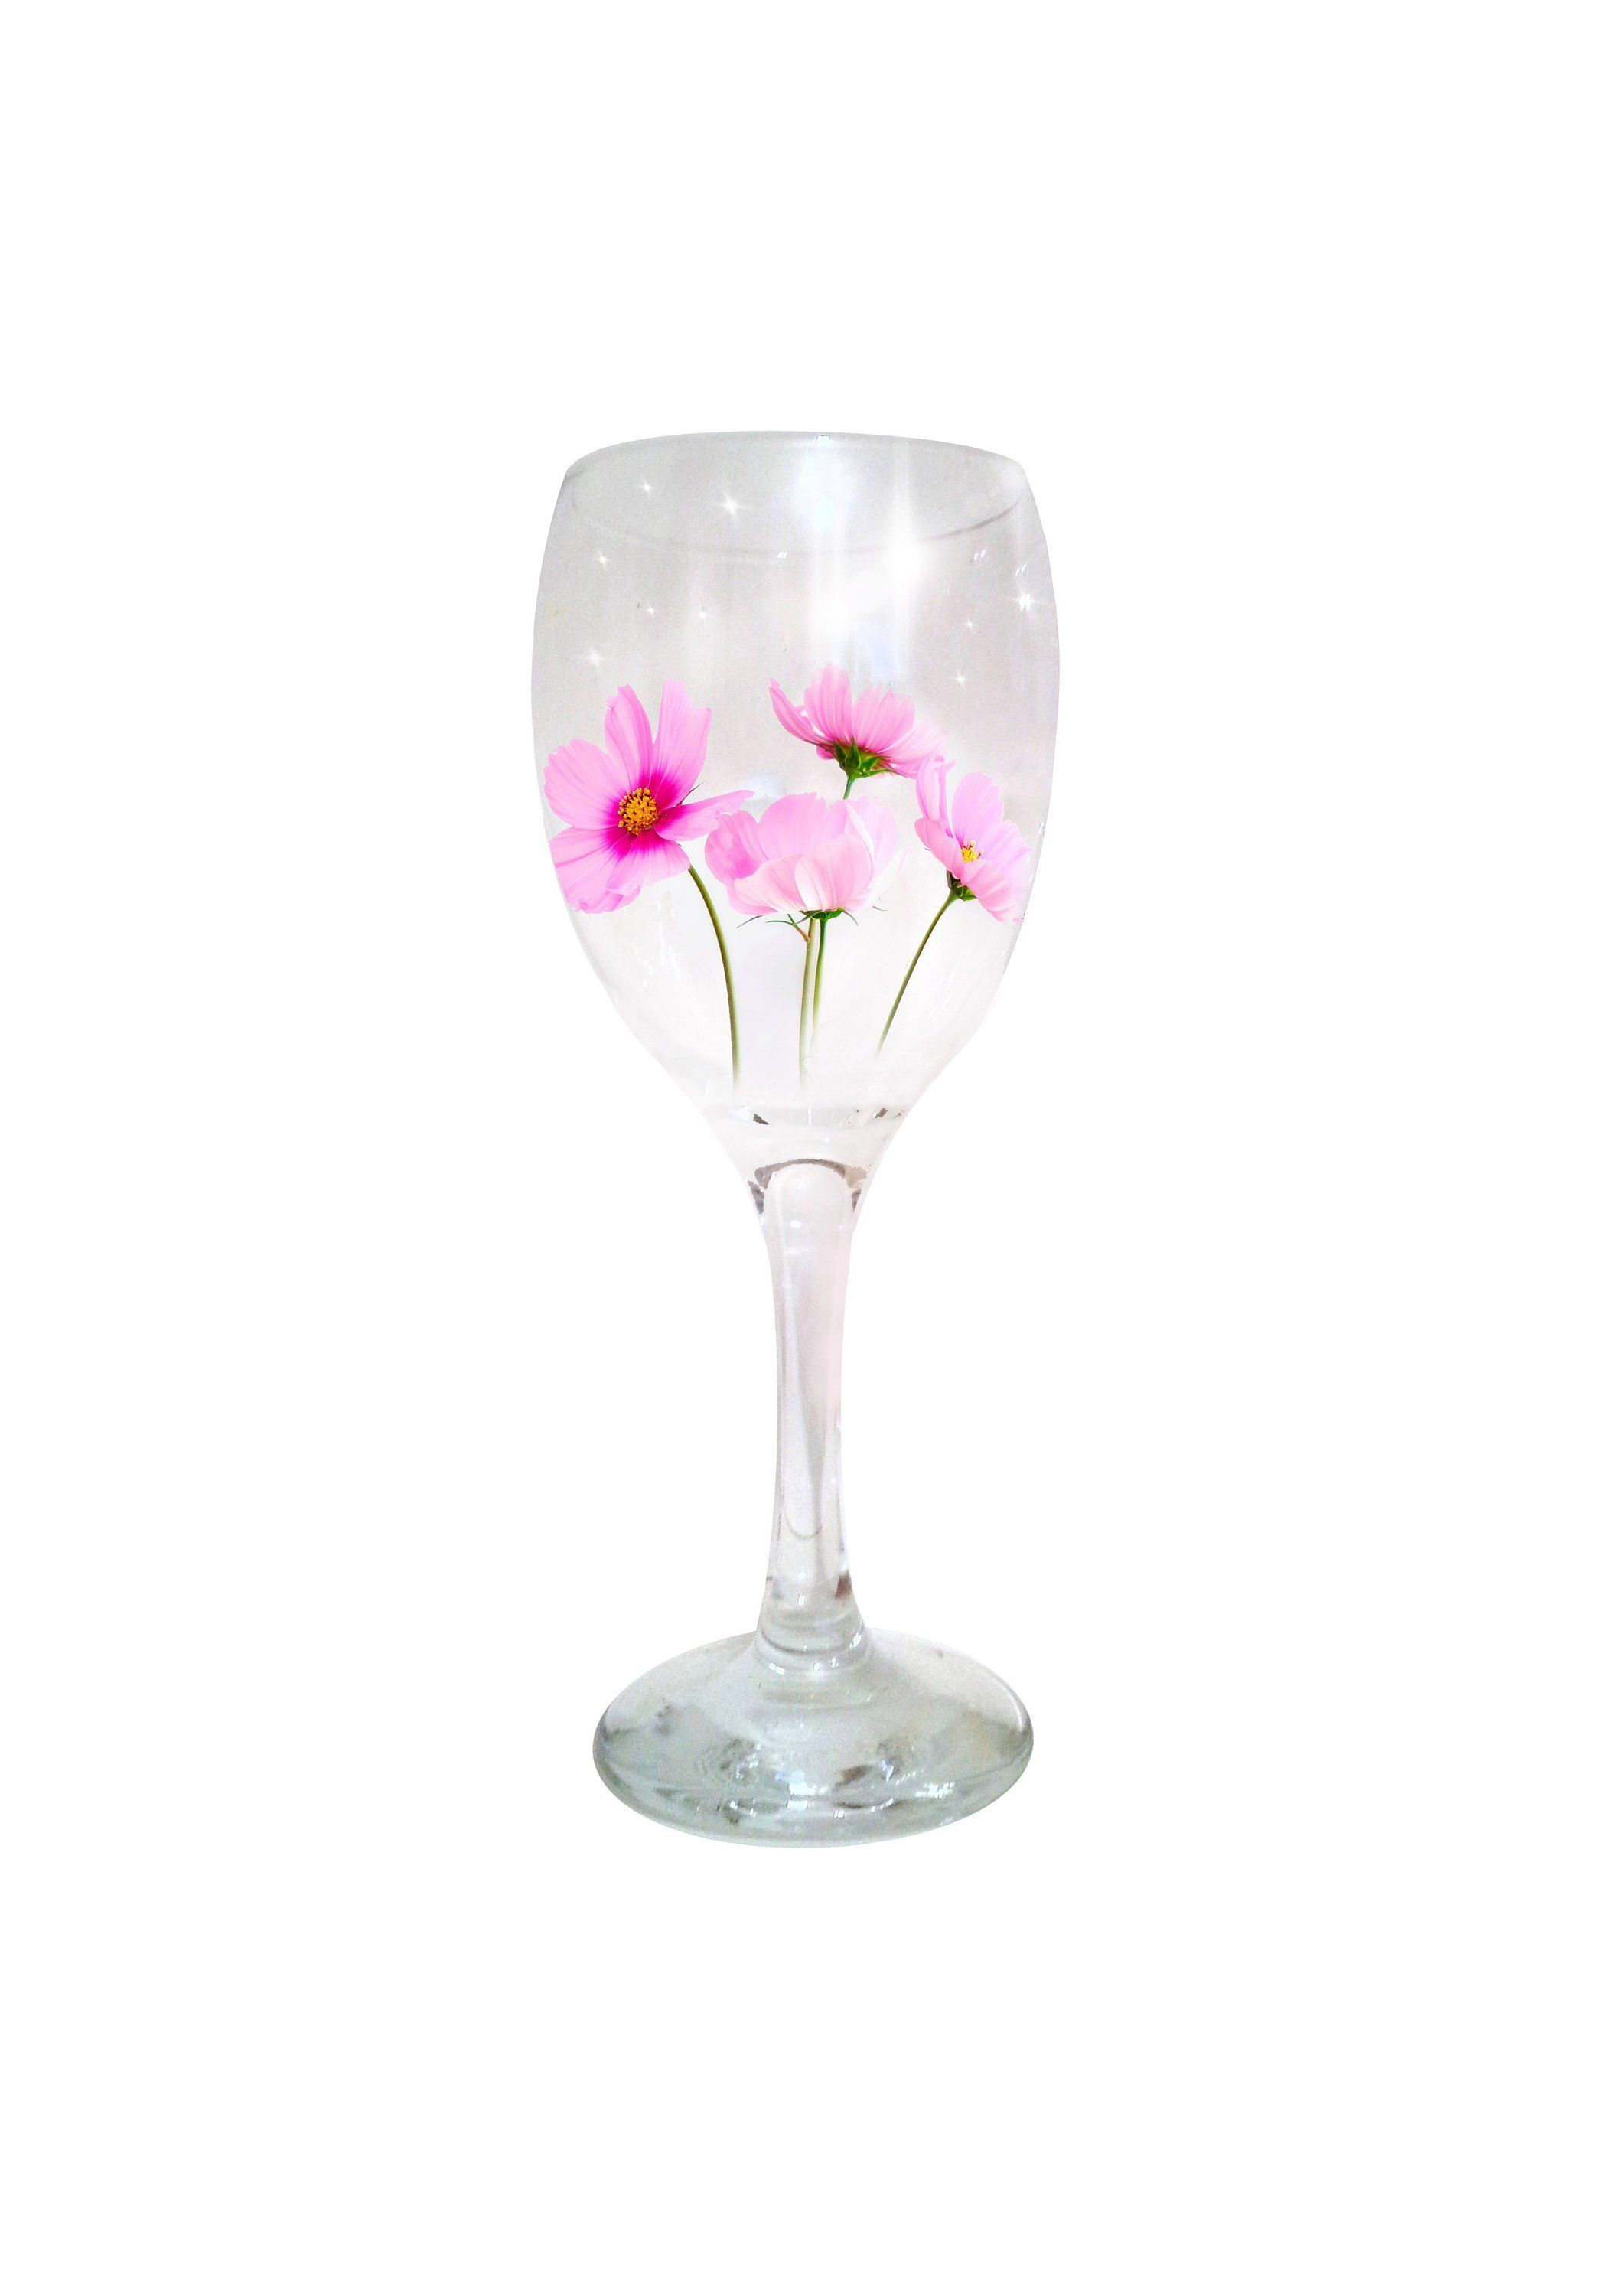 Floral Wine Glass Hand Painted Flowers Wine Glass Handmade Flower